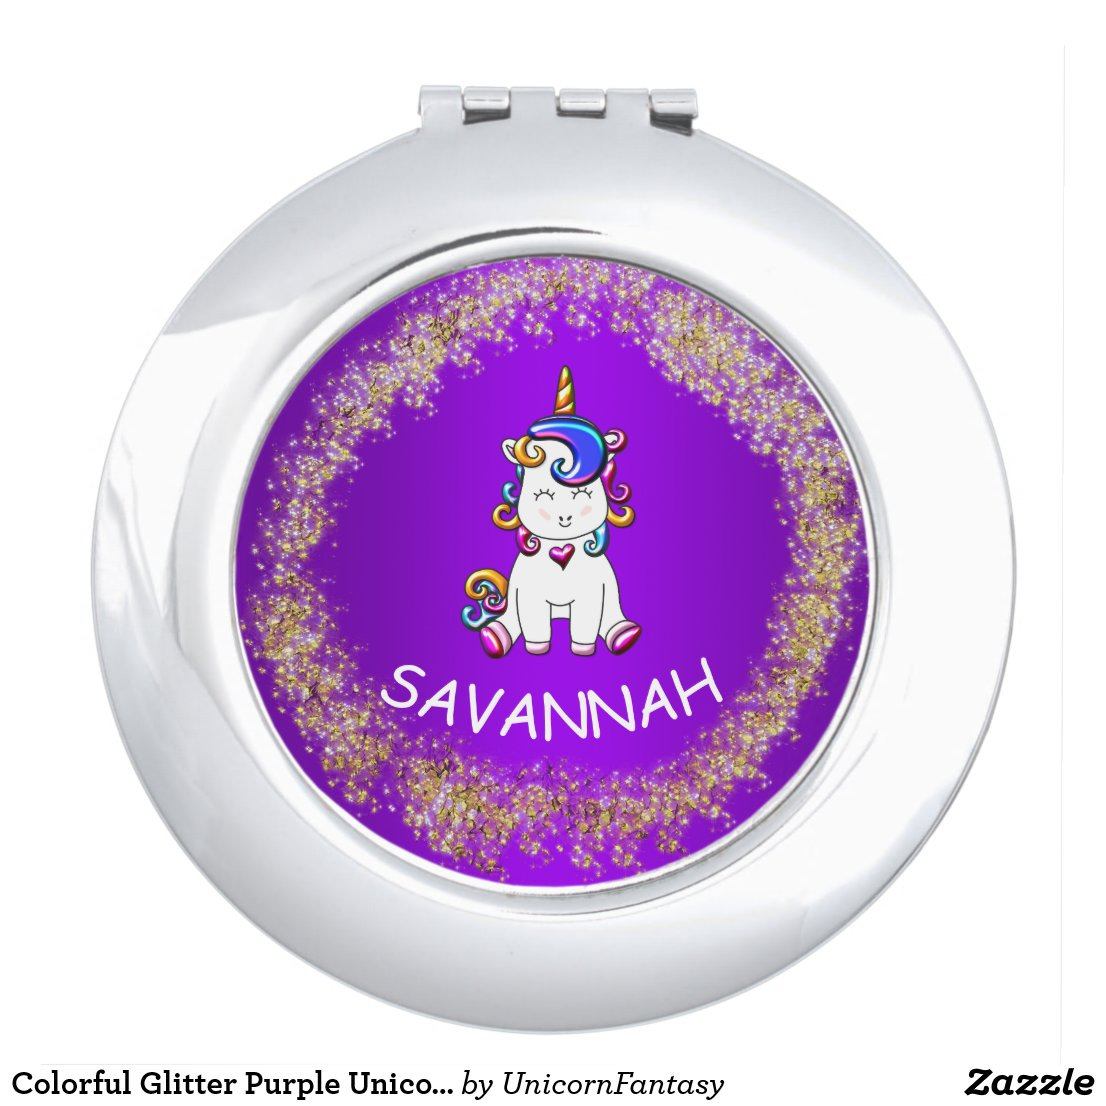 Colorful Glitter Purple Unicorn Compact Mirror